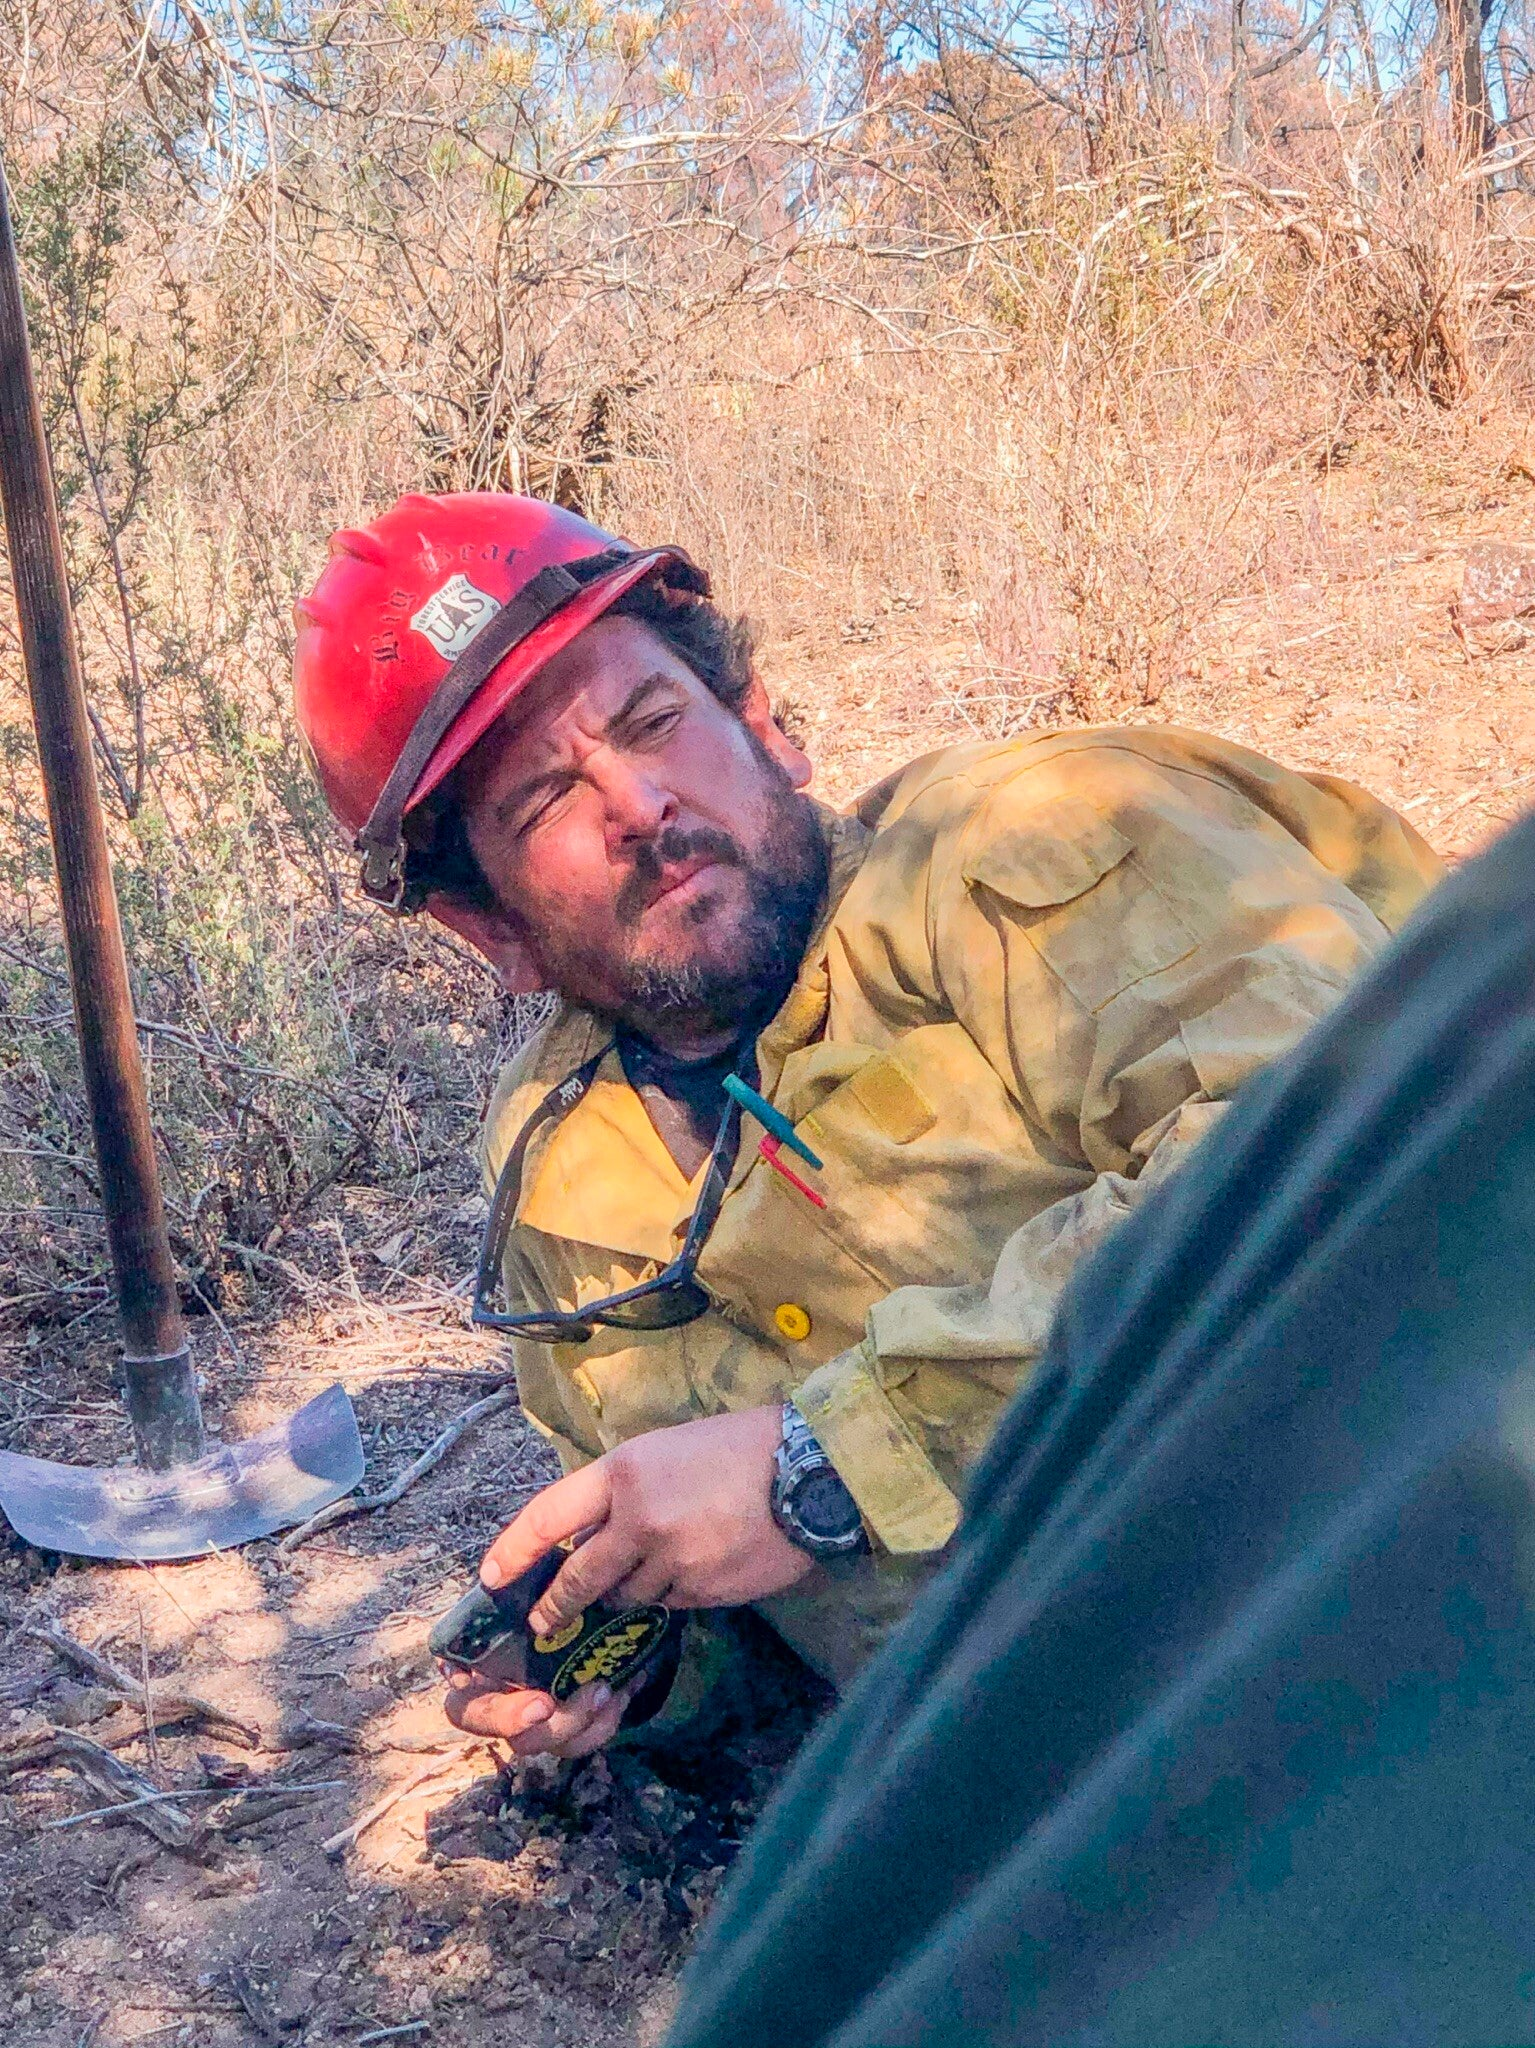 Firefighter who died in blaze was on elite Hotshot crew Firefighter wildfires Firefighter CREW CREW